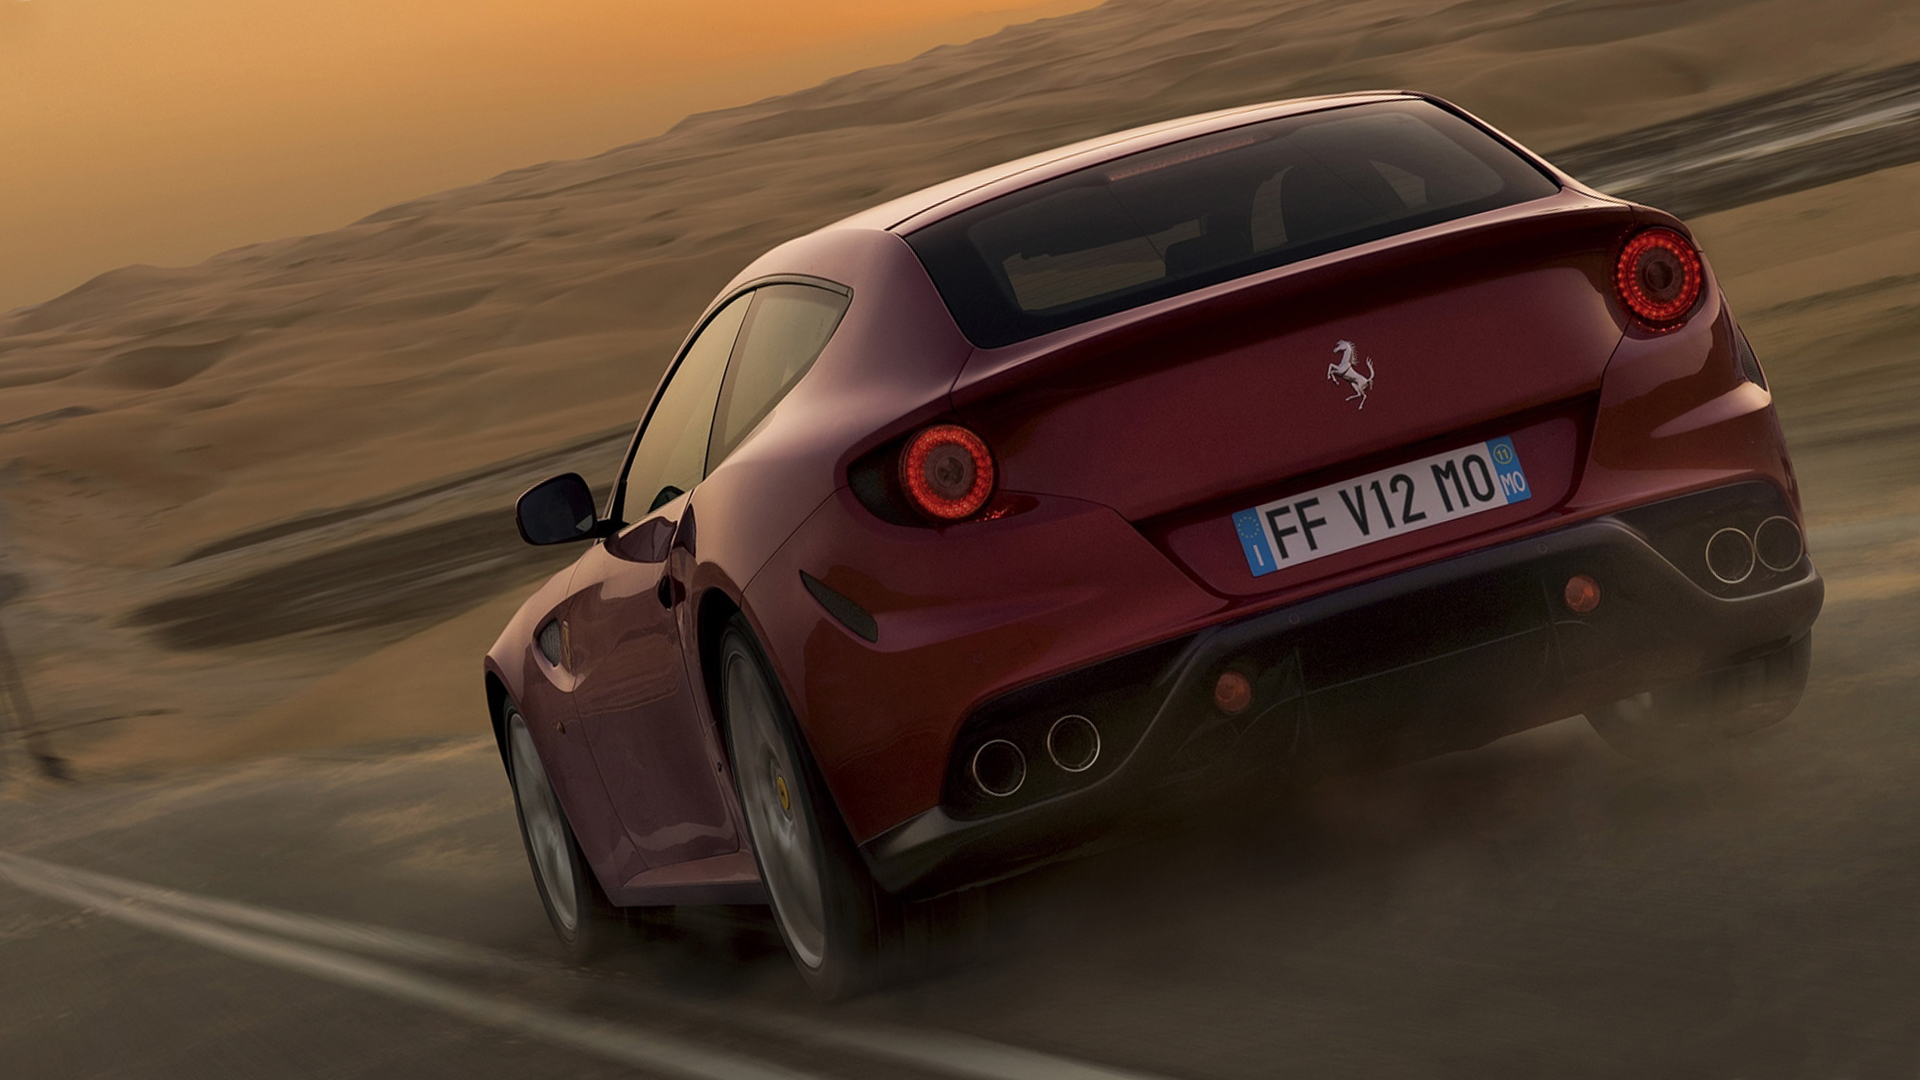 1920x1080 - Ferrari FF Wallpapers 23